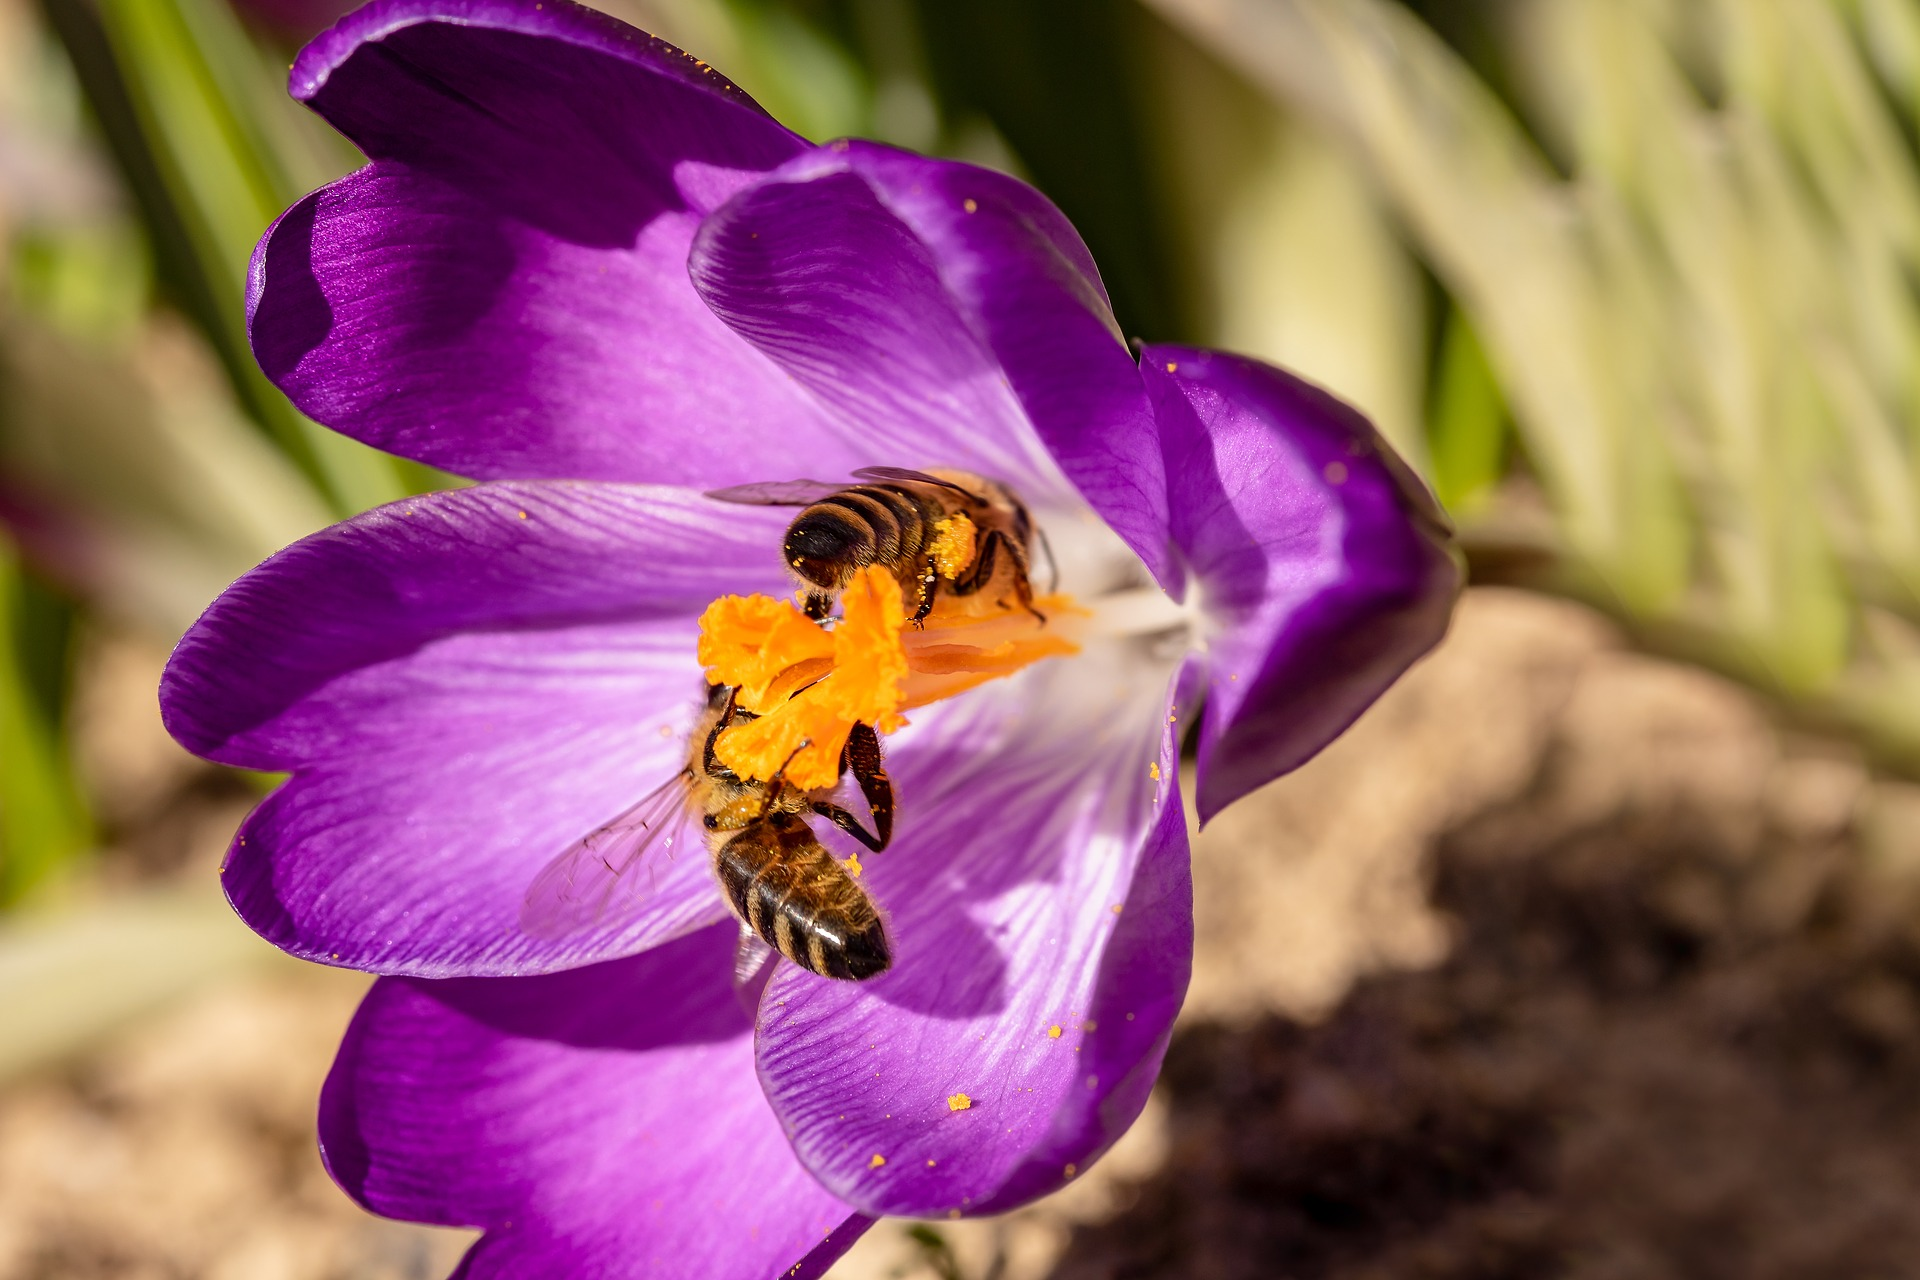 bees-4051546_1920